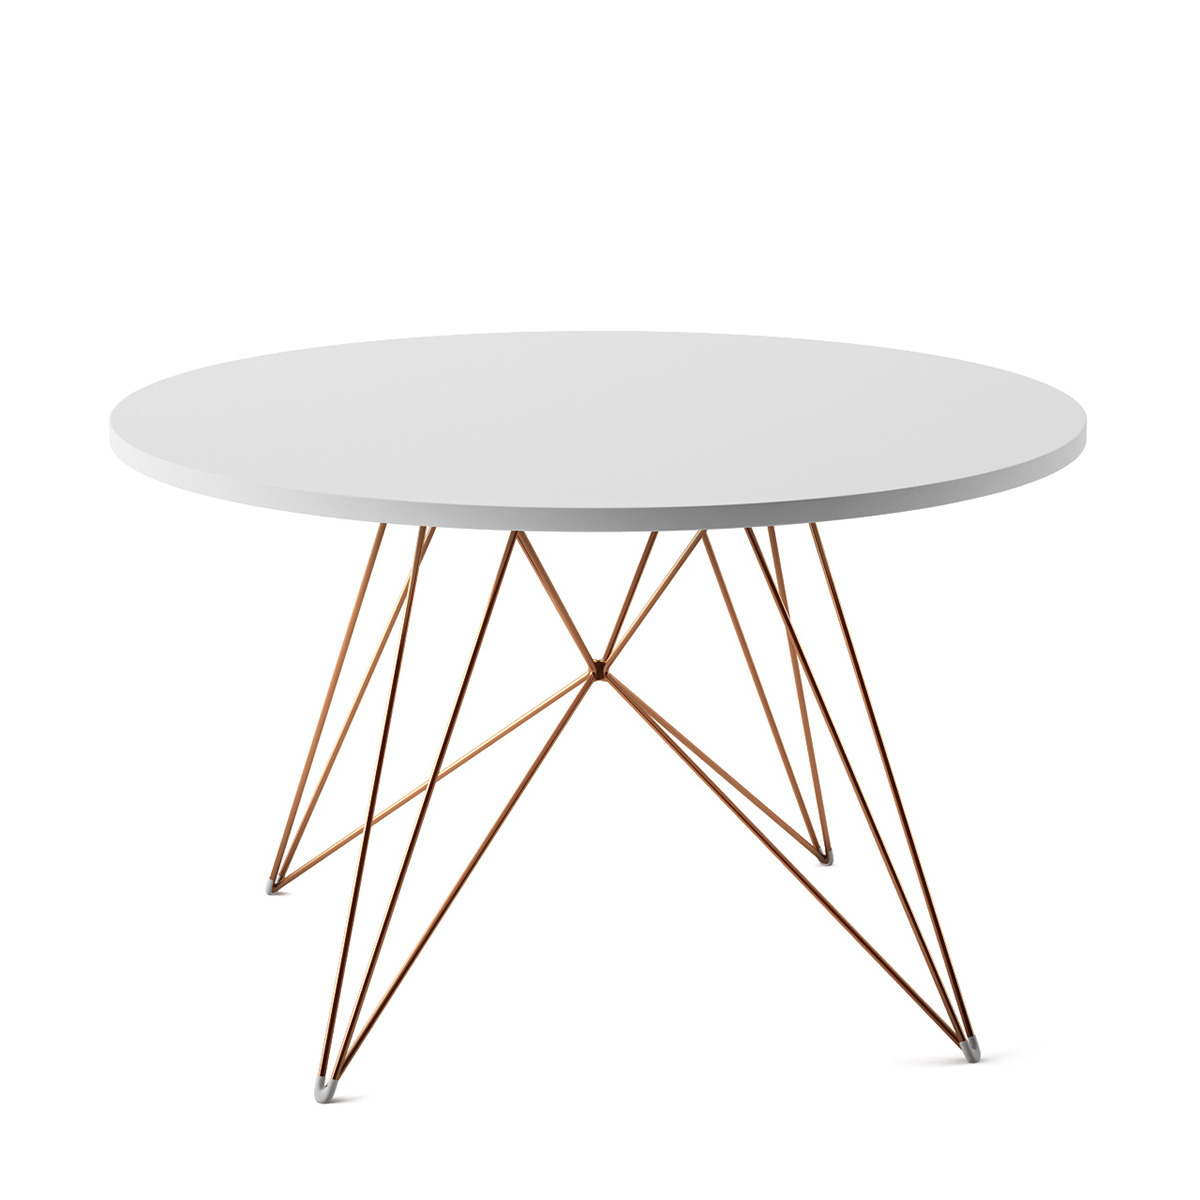 146246232396 – tavolo xz3 table